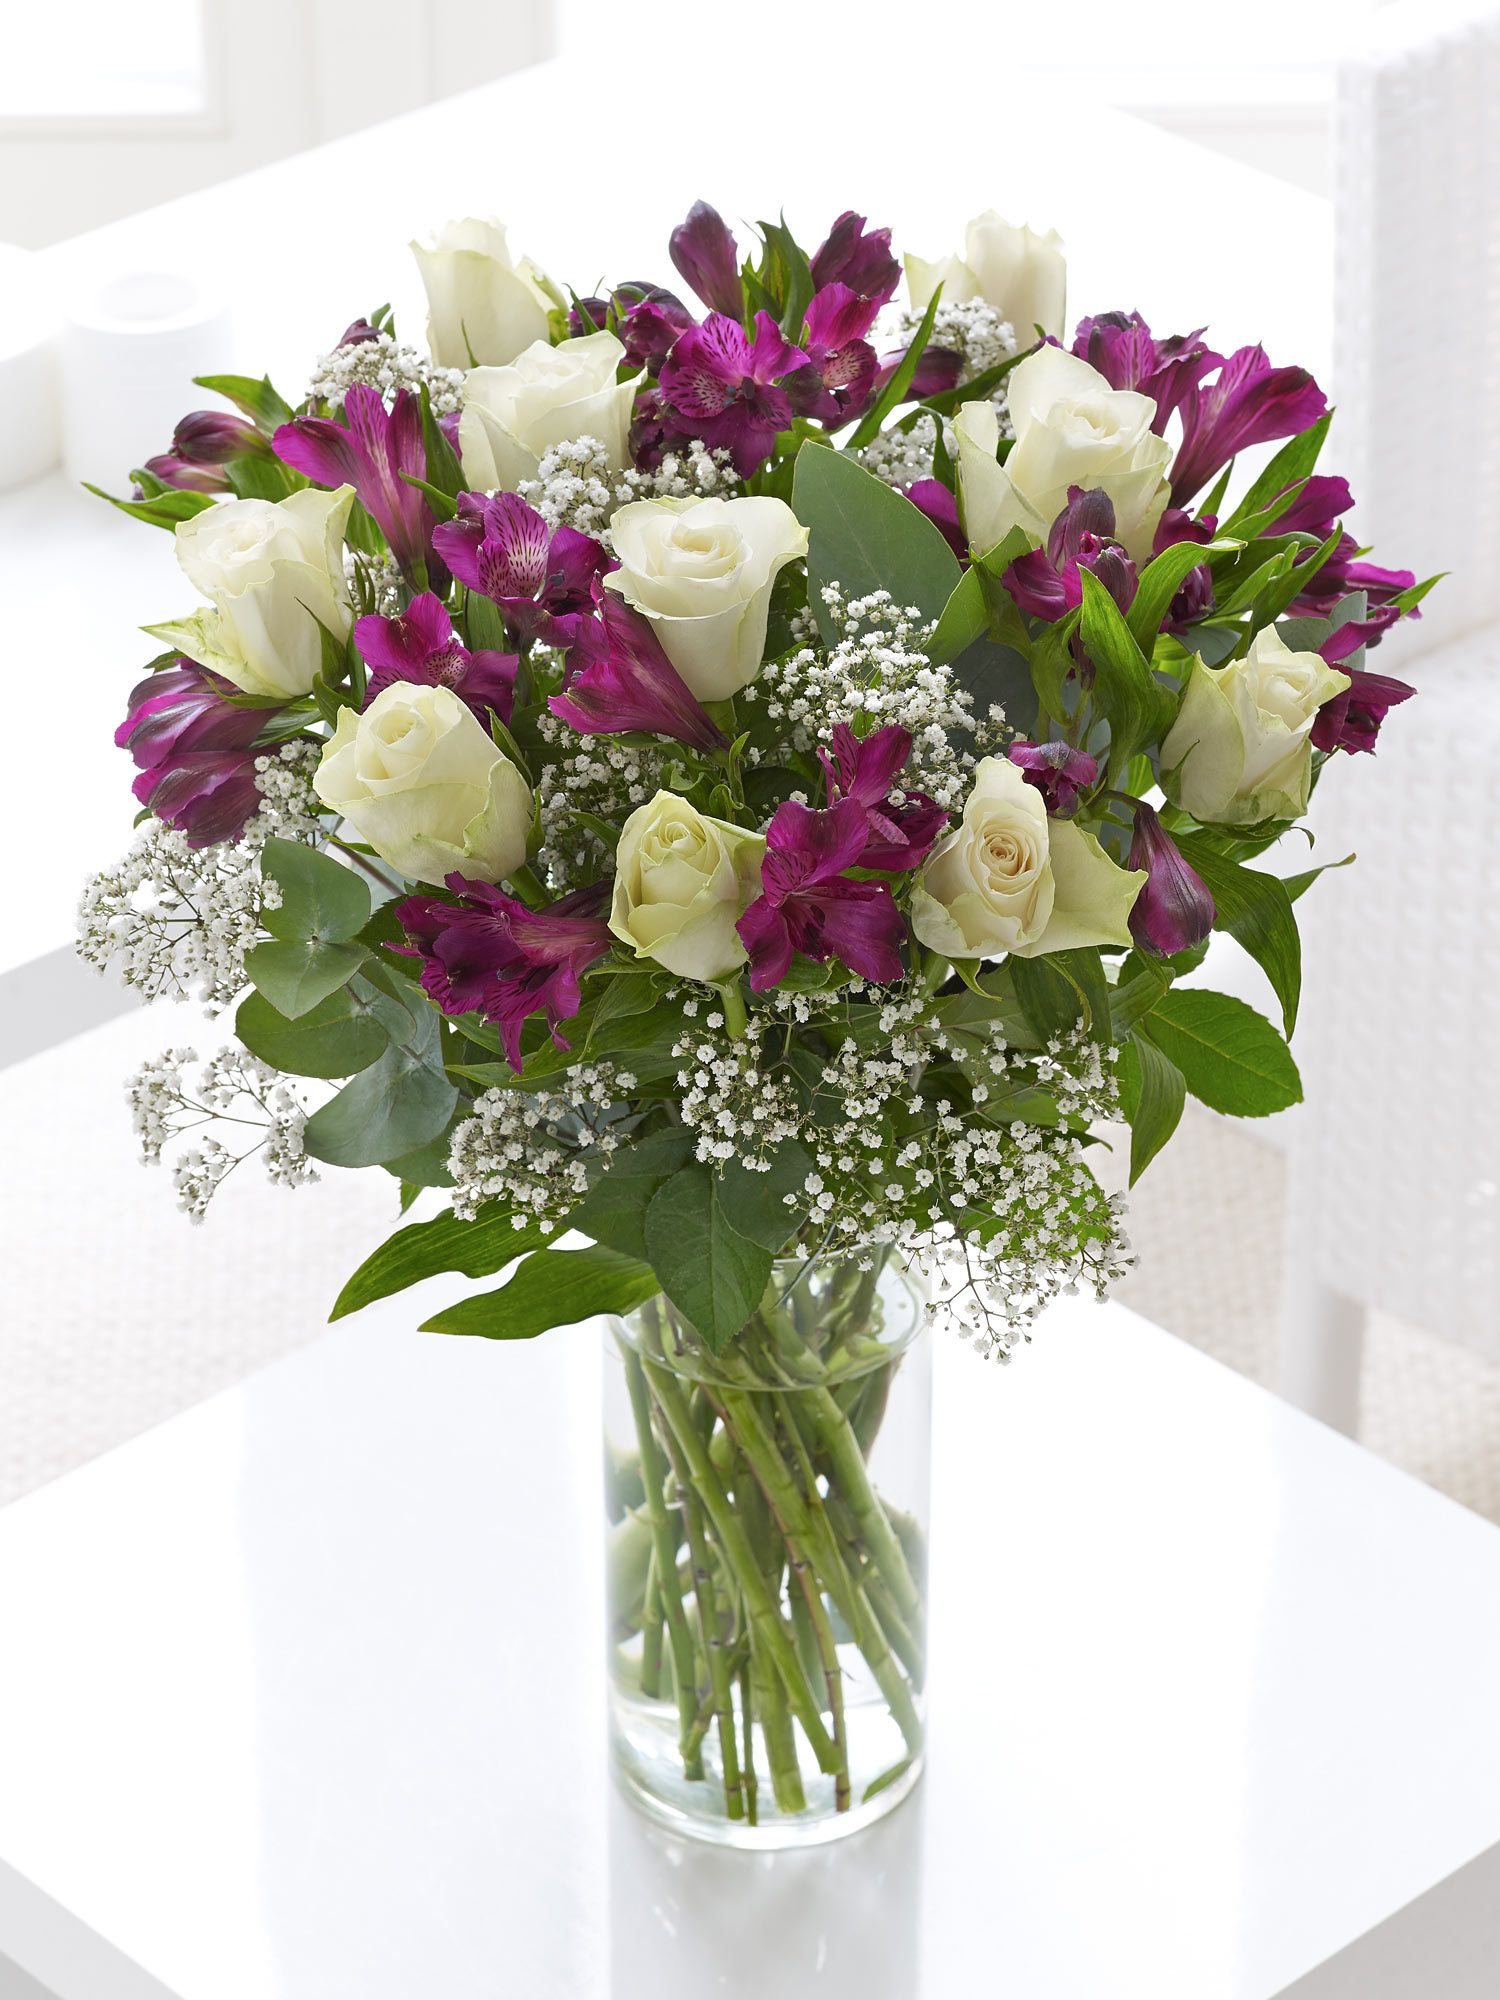 Fairtrade White Rose And Alstroemeria Hand Tied Interflora